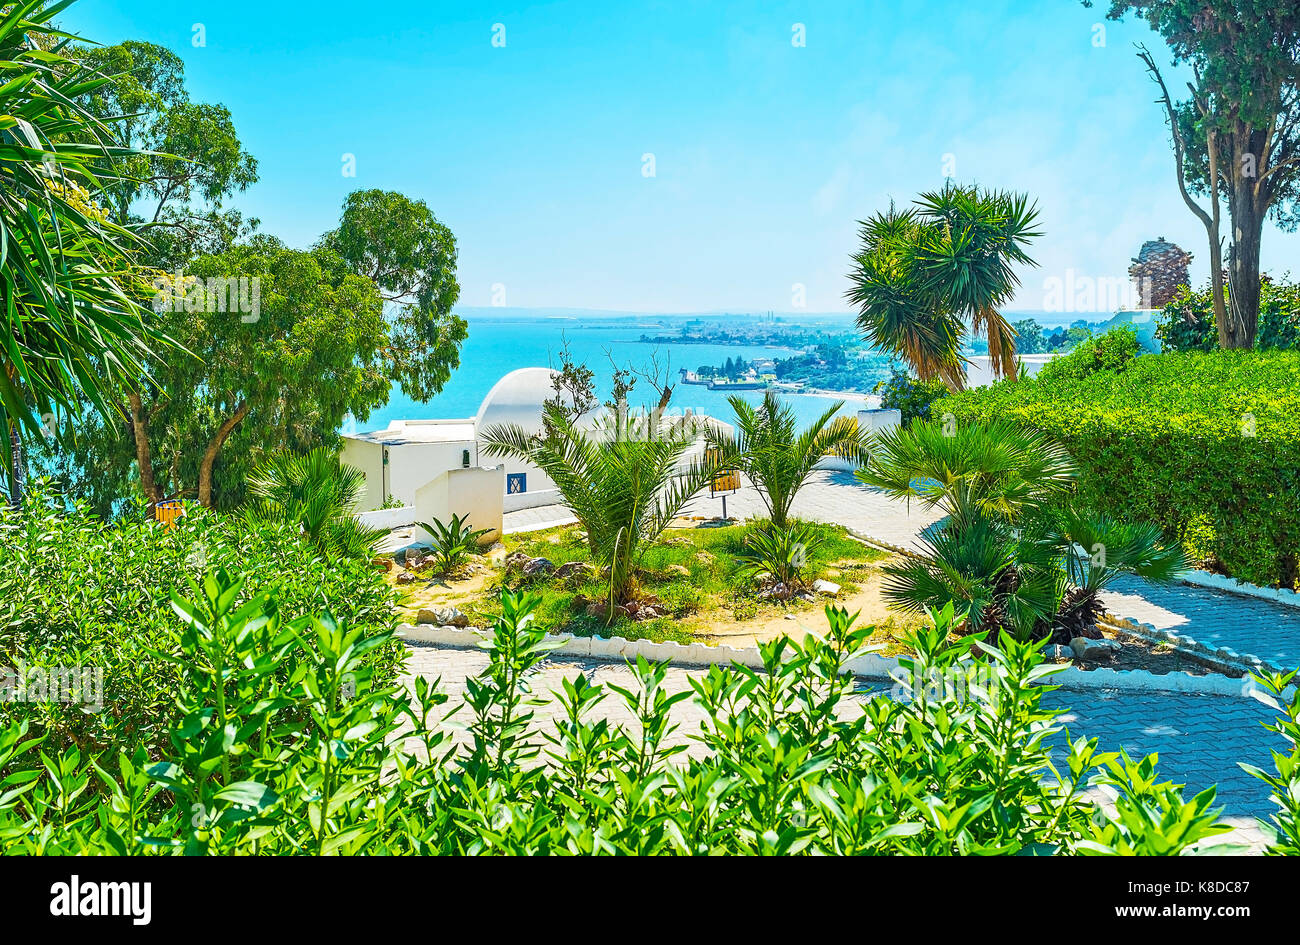 The lush juicy garden in Sidi Bou Said with the scenic view on the sea on the distance, Tunisia. - Stock Image